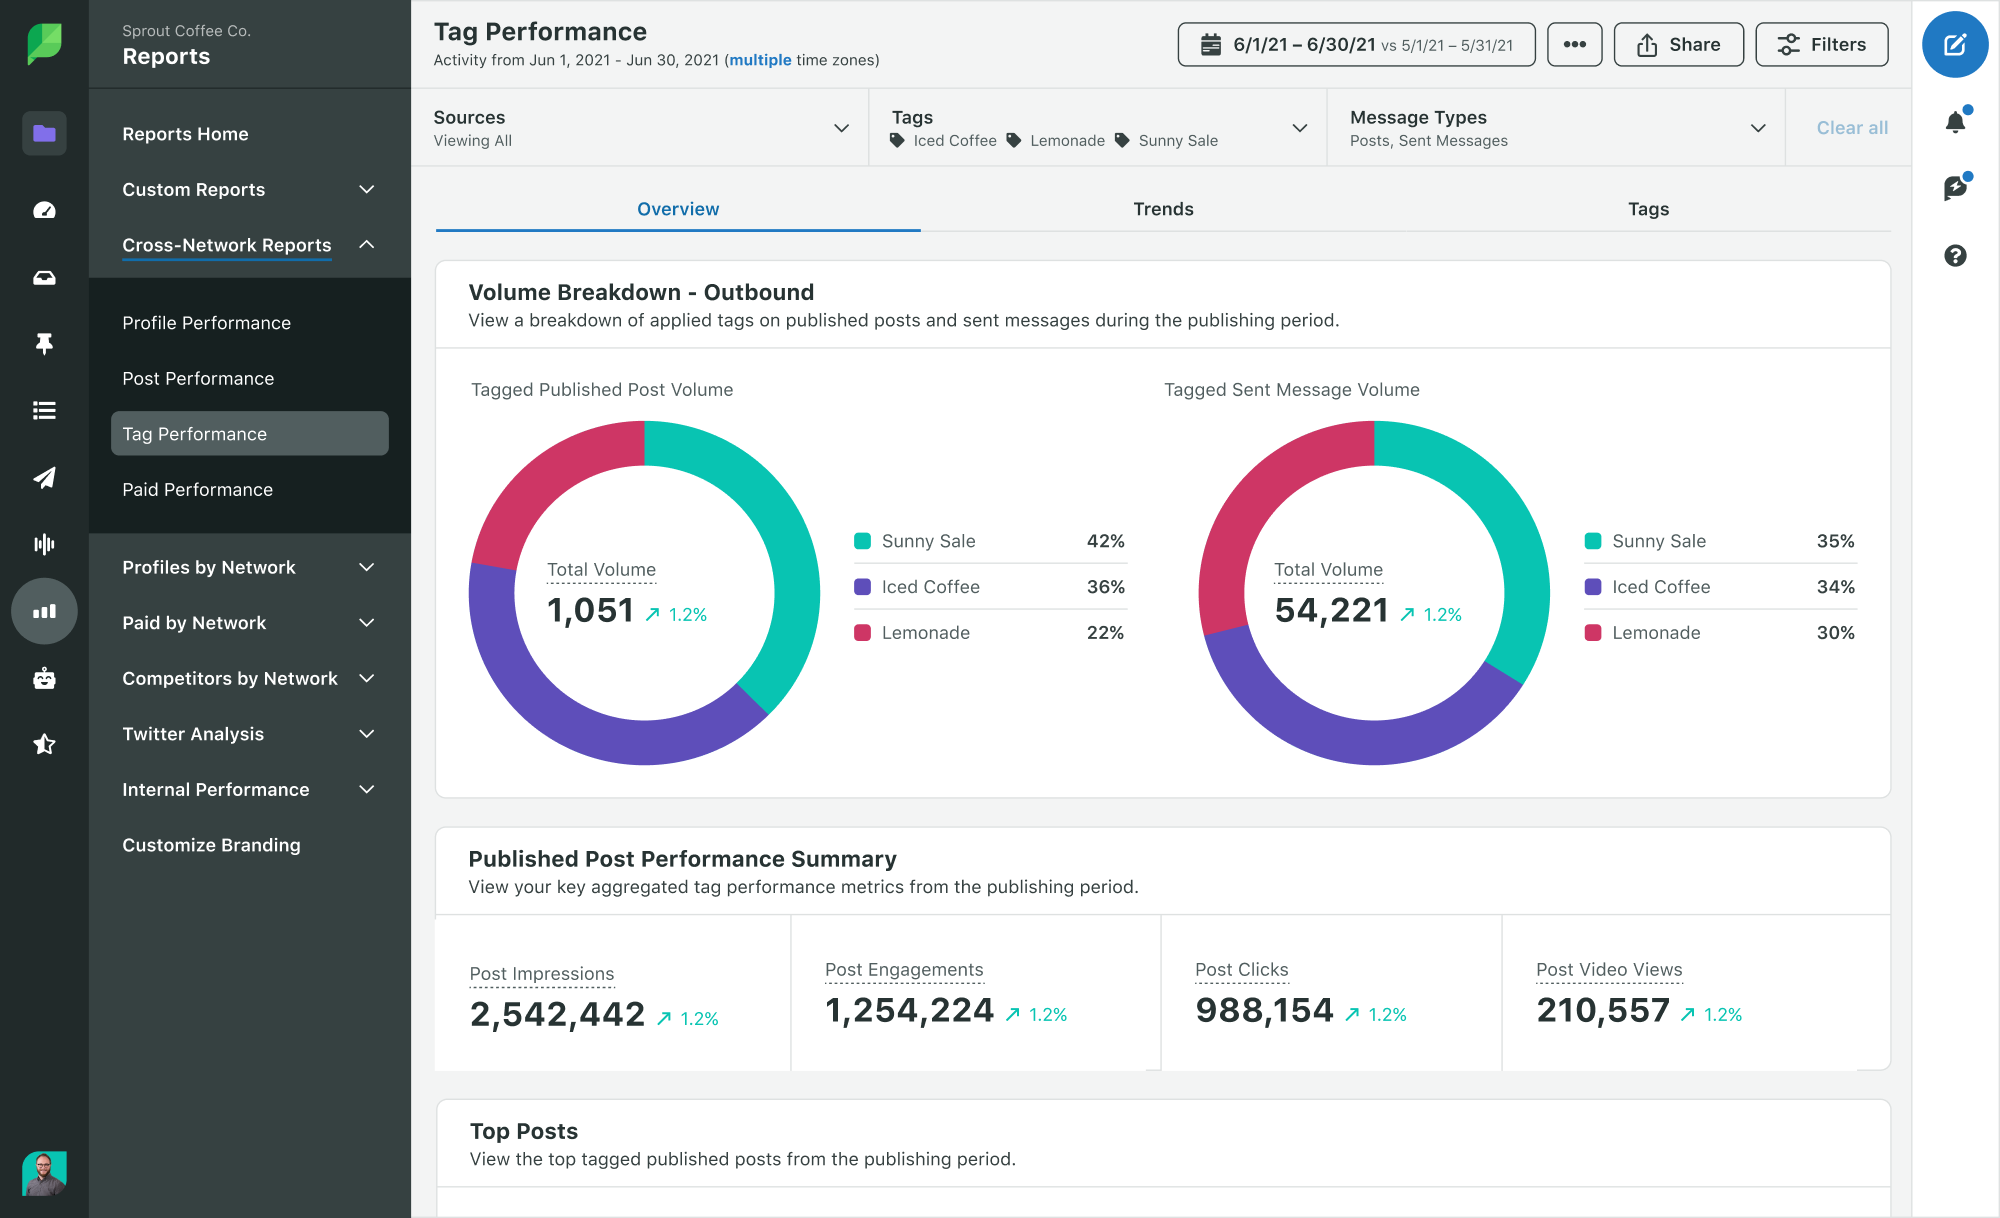 Sprout Social Product Image of Analytics Cross-Channel Tag Report